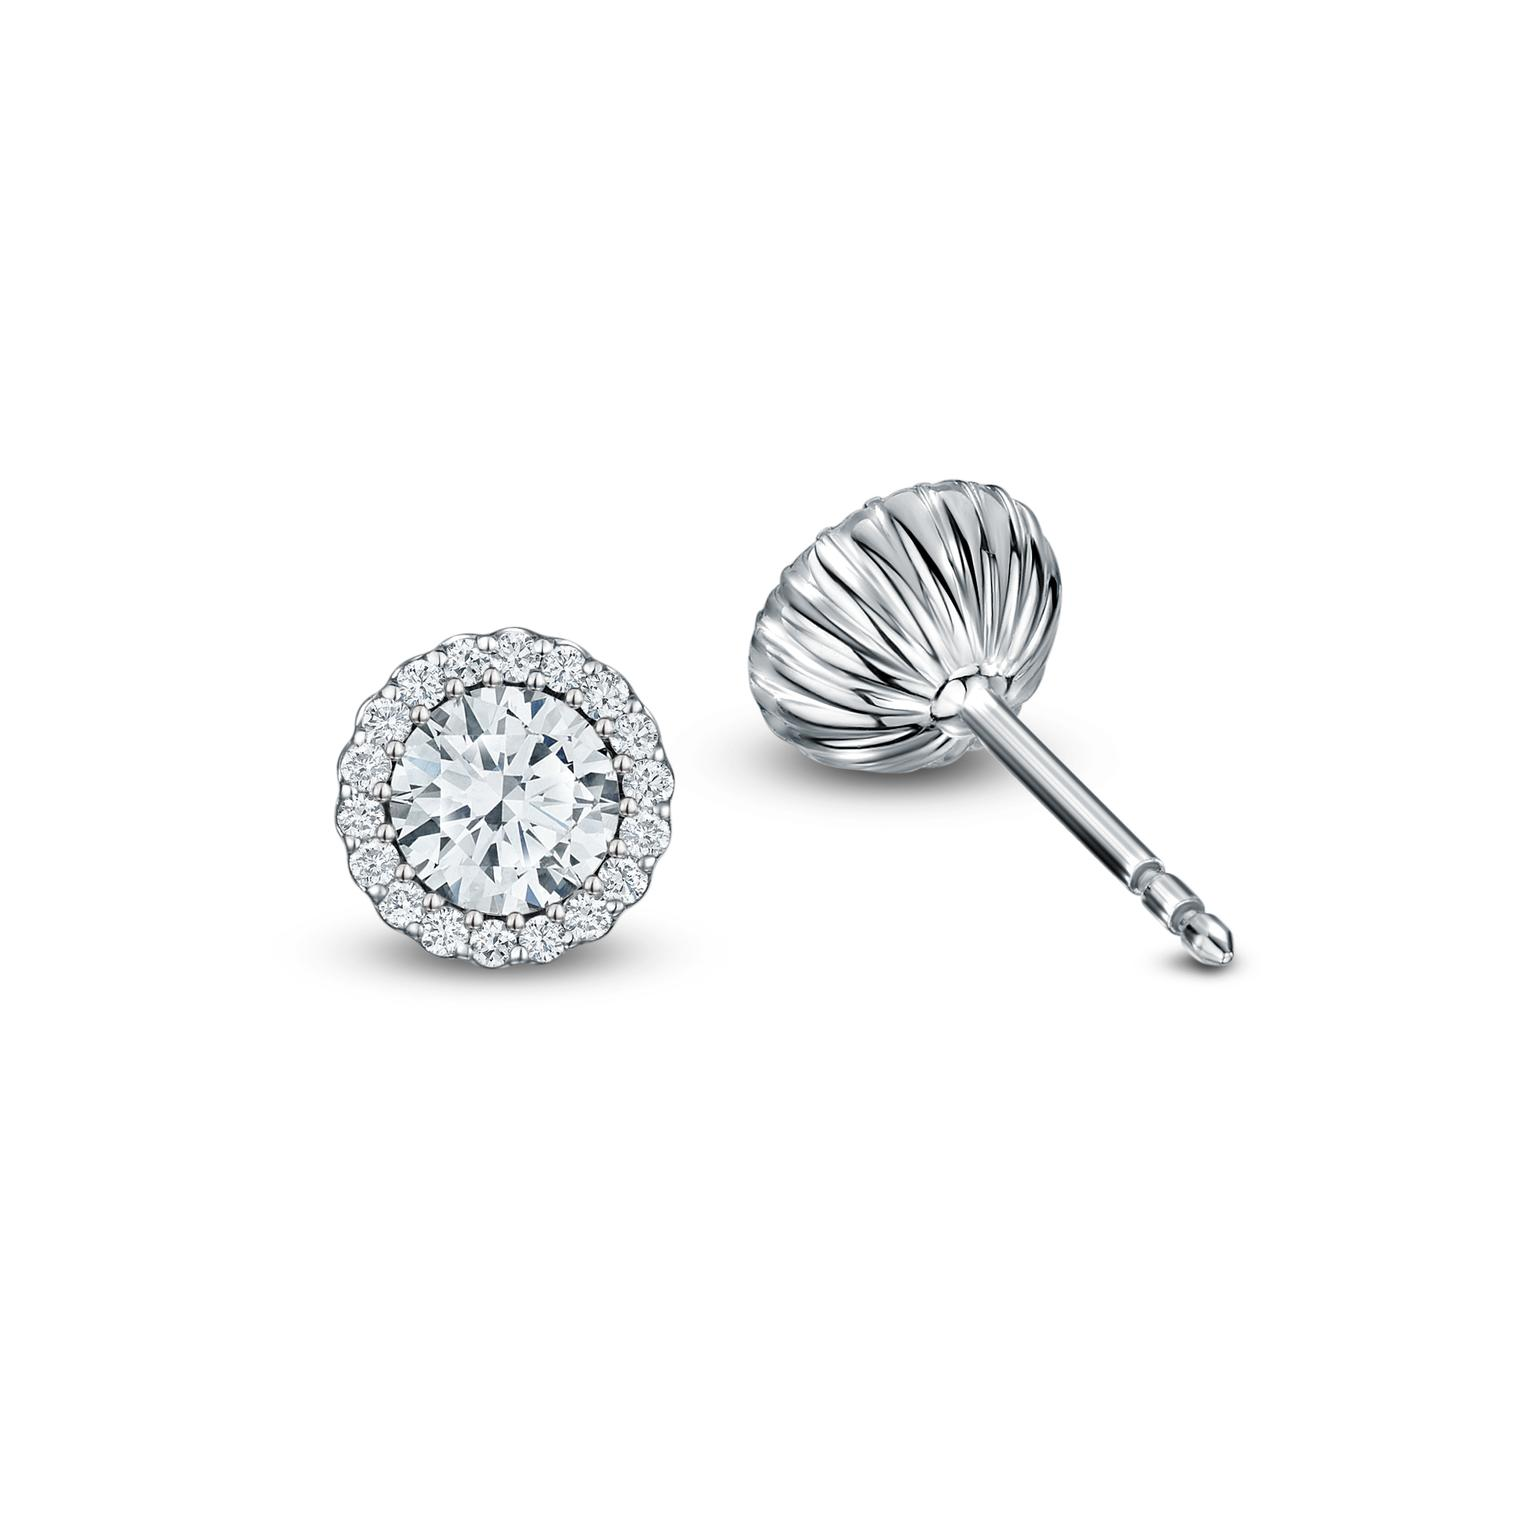 Andrew Geoghegan Cannelé diamond earrings